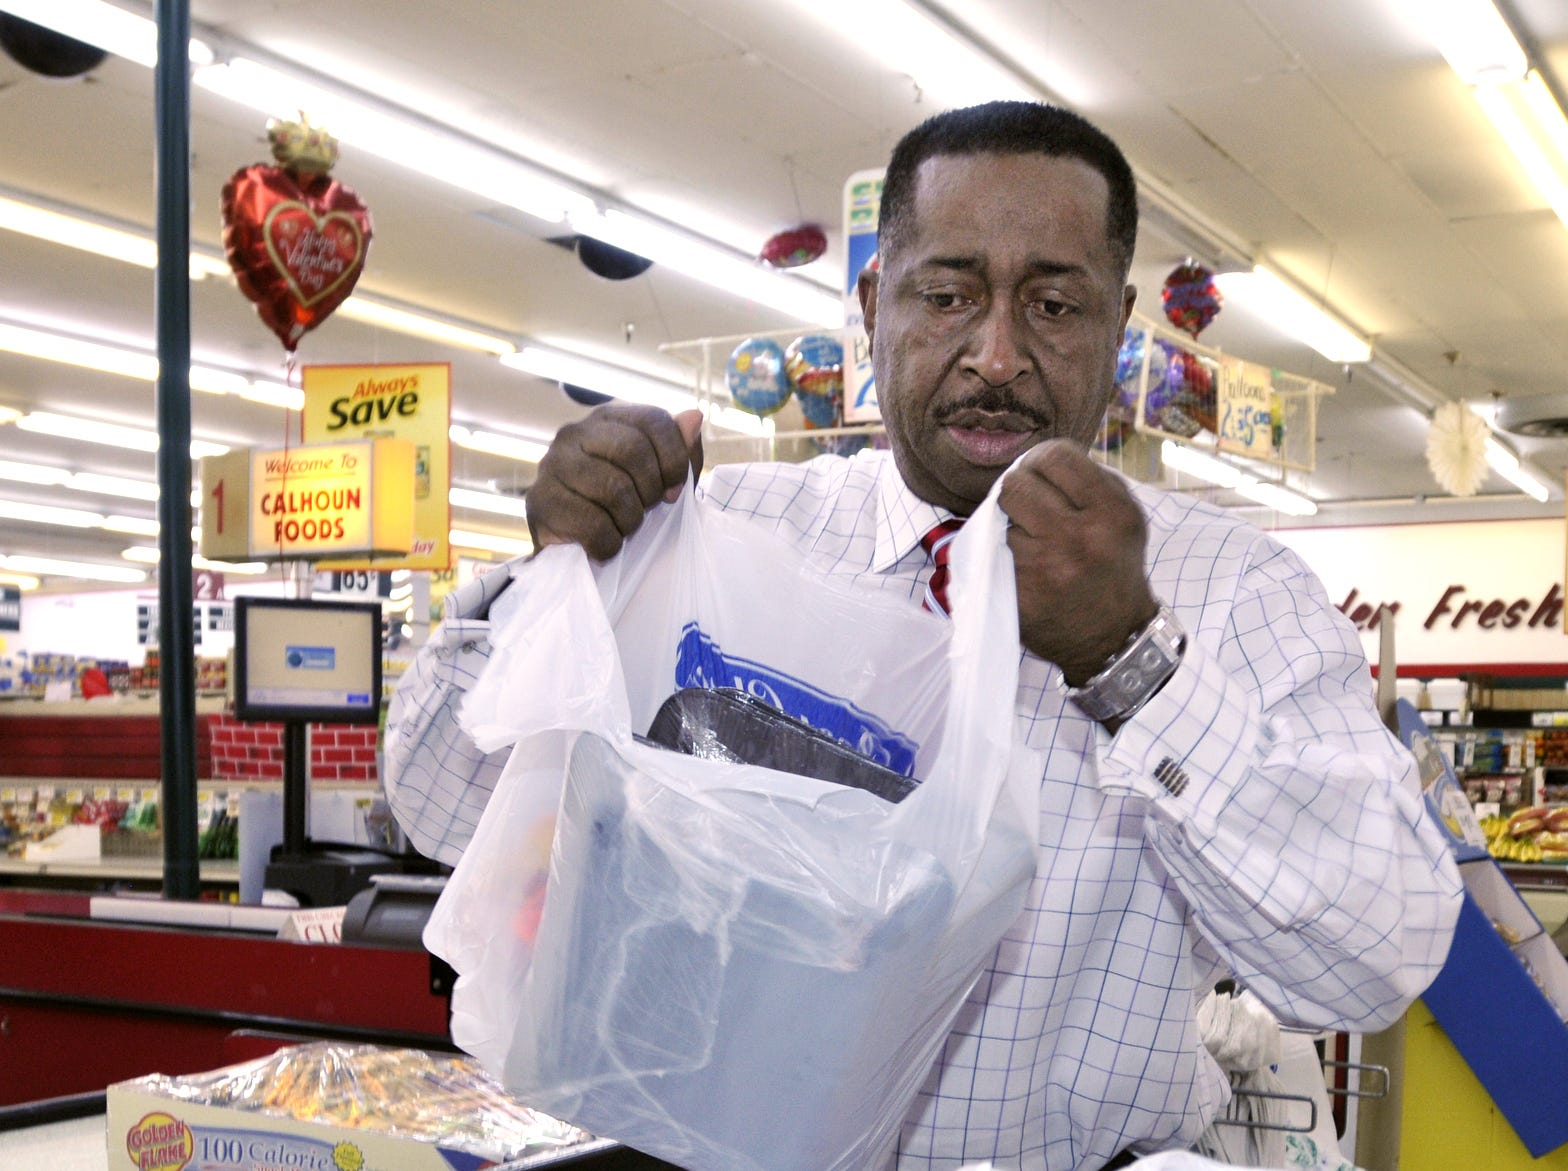 Greg Calhoun bags groceries for a customer at his Calhoun Foods store on Fairview Avenue in Montgomery, Ala. on Wednesday, Feb. 8, 2012. (Montgomery Advertiser, Lloyd Gallman)